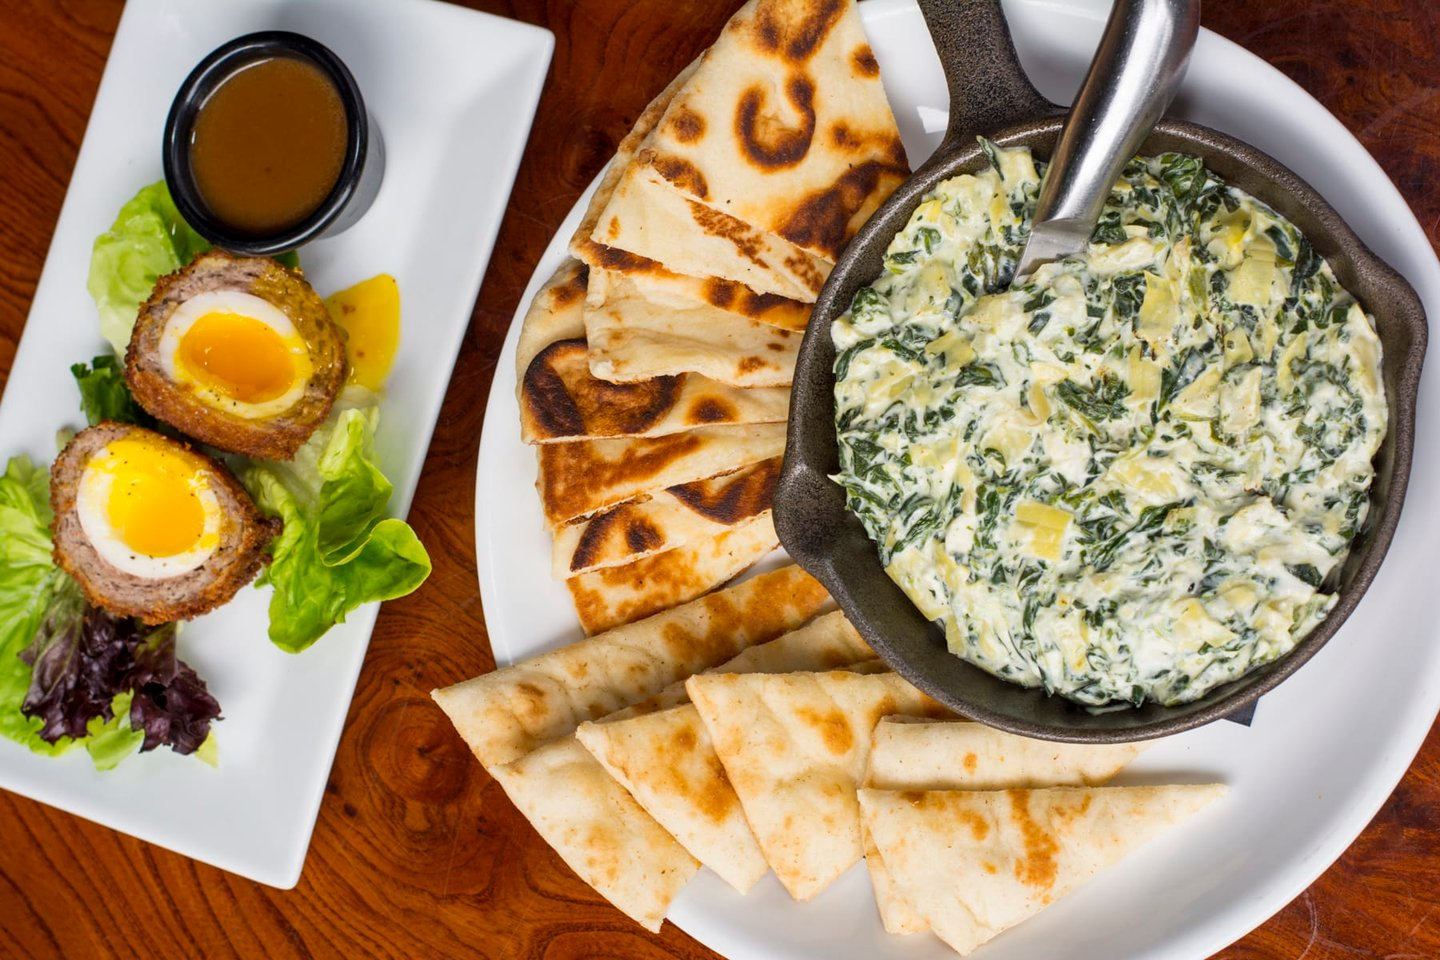 scottish eggs and artichoke dip